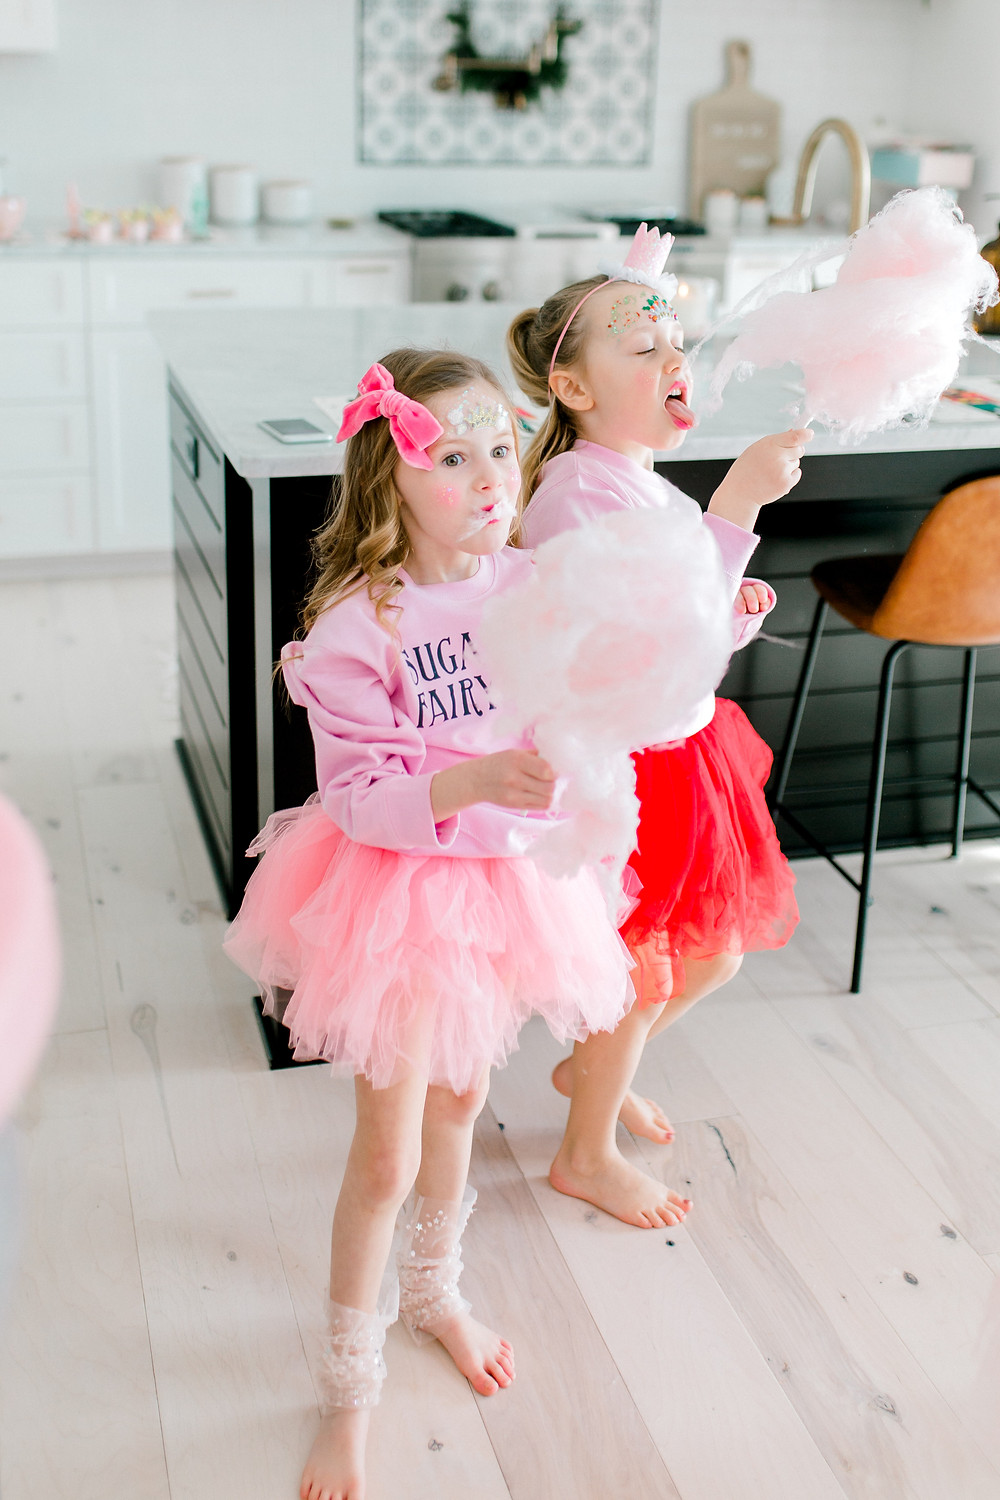 Sugarplum fairies in their pink and red tutus eating pink cotton candy.